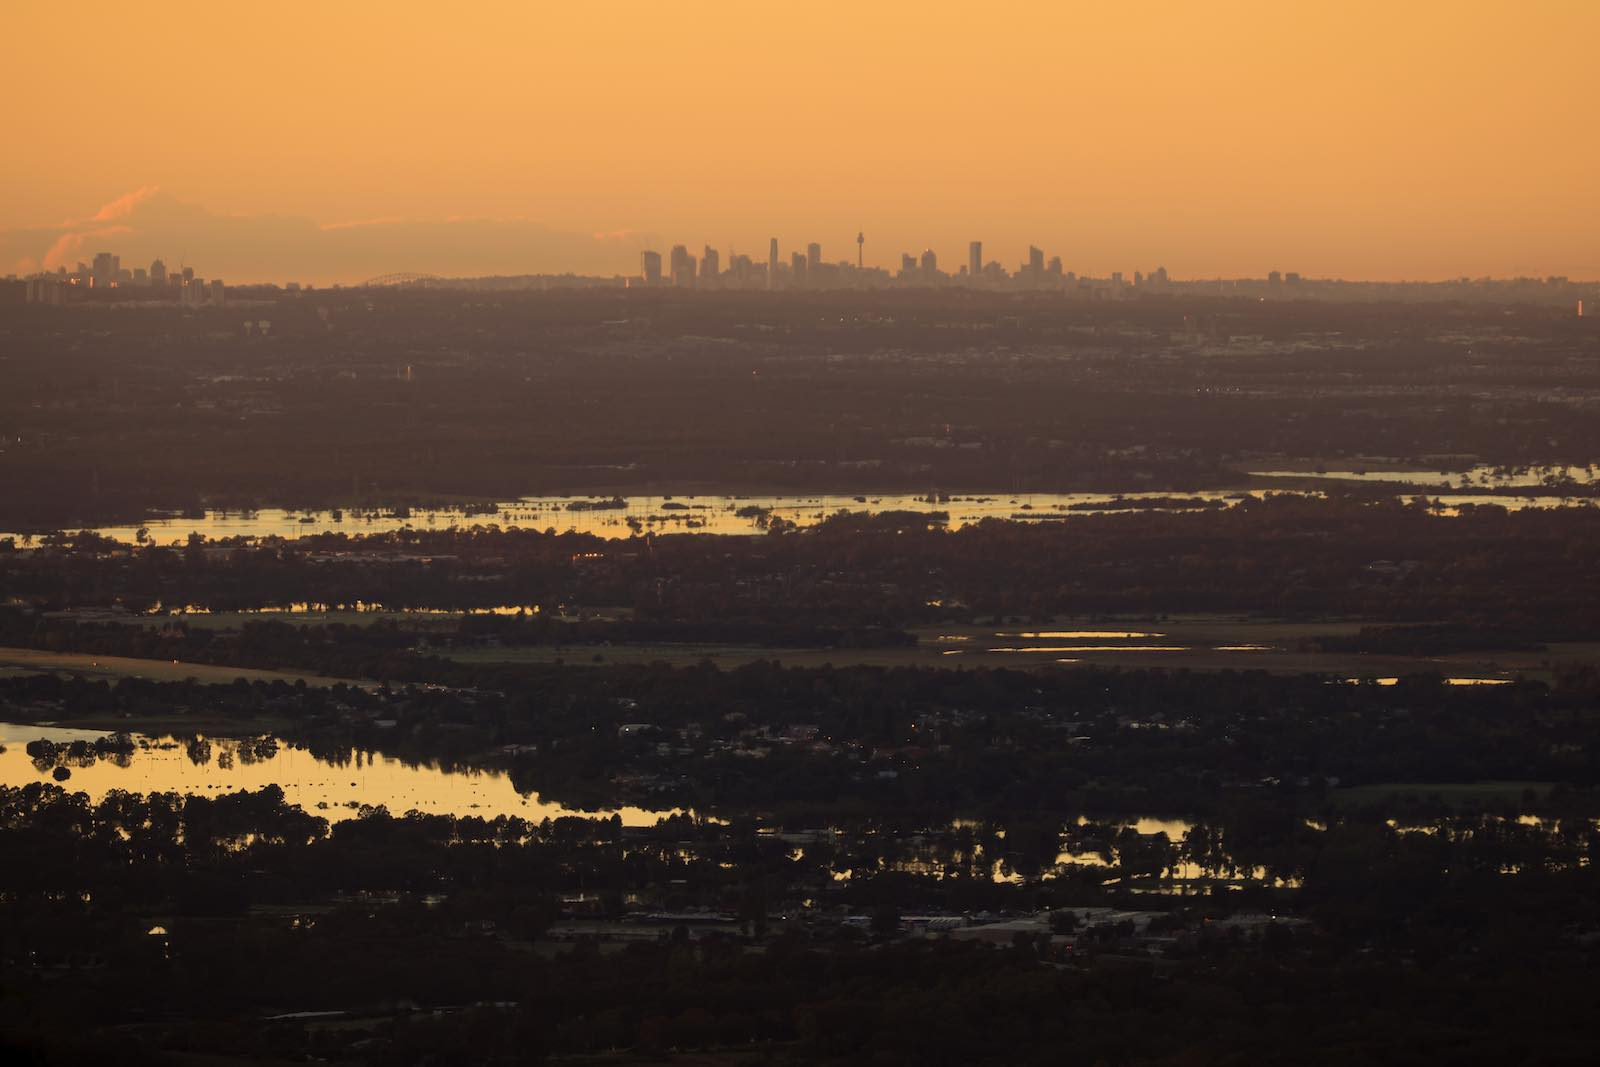 Floods in the Hawkesbury River region near Kurrajong Heights, with the Sydney skyline in the distance, 24 March 2021 (Mark Evans/Getty Images)